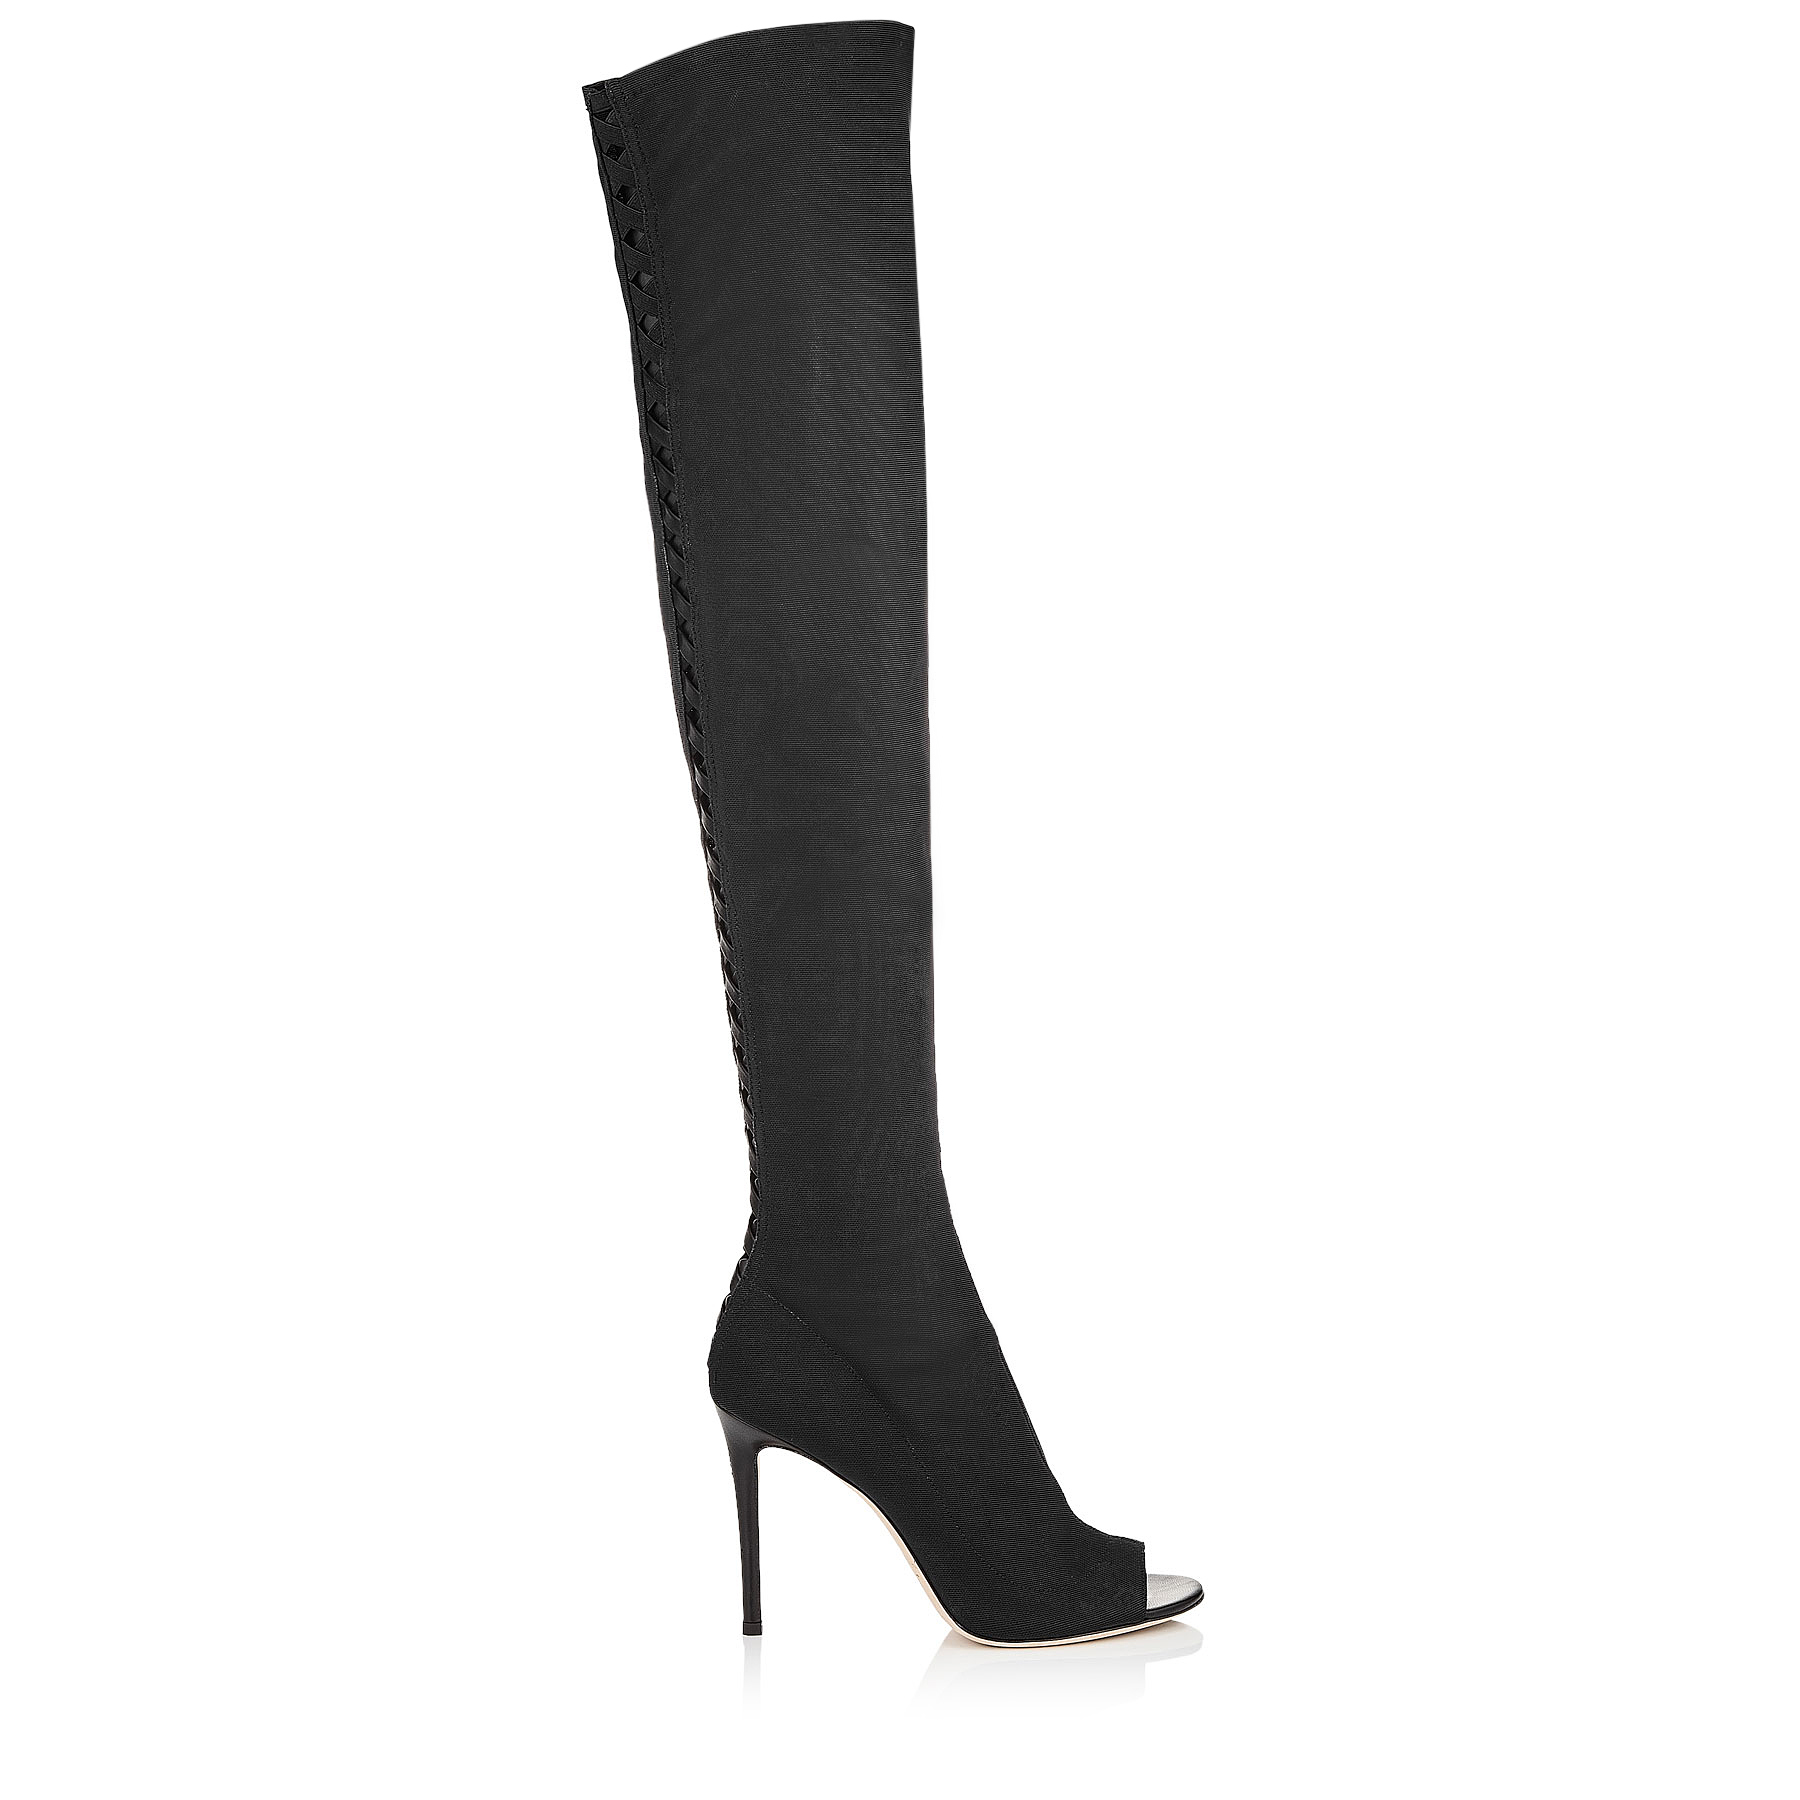 DESAI 100 Black Fabric Mesh and Nappa Leather Over The Knee Boots by Jimmy Choo